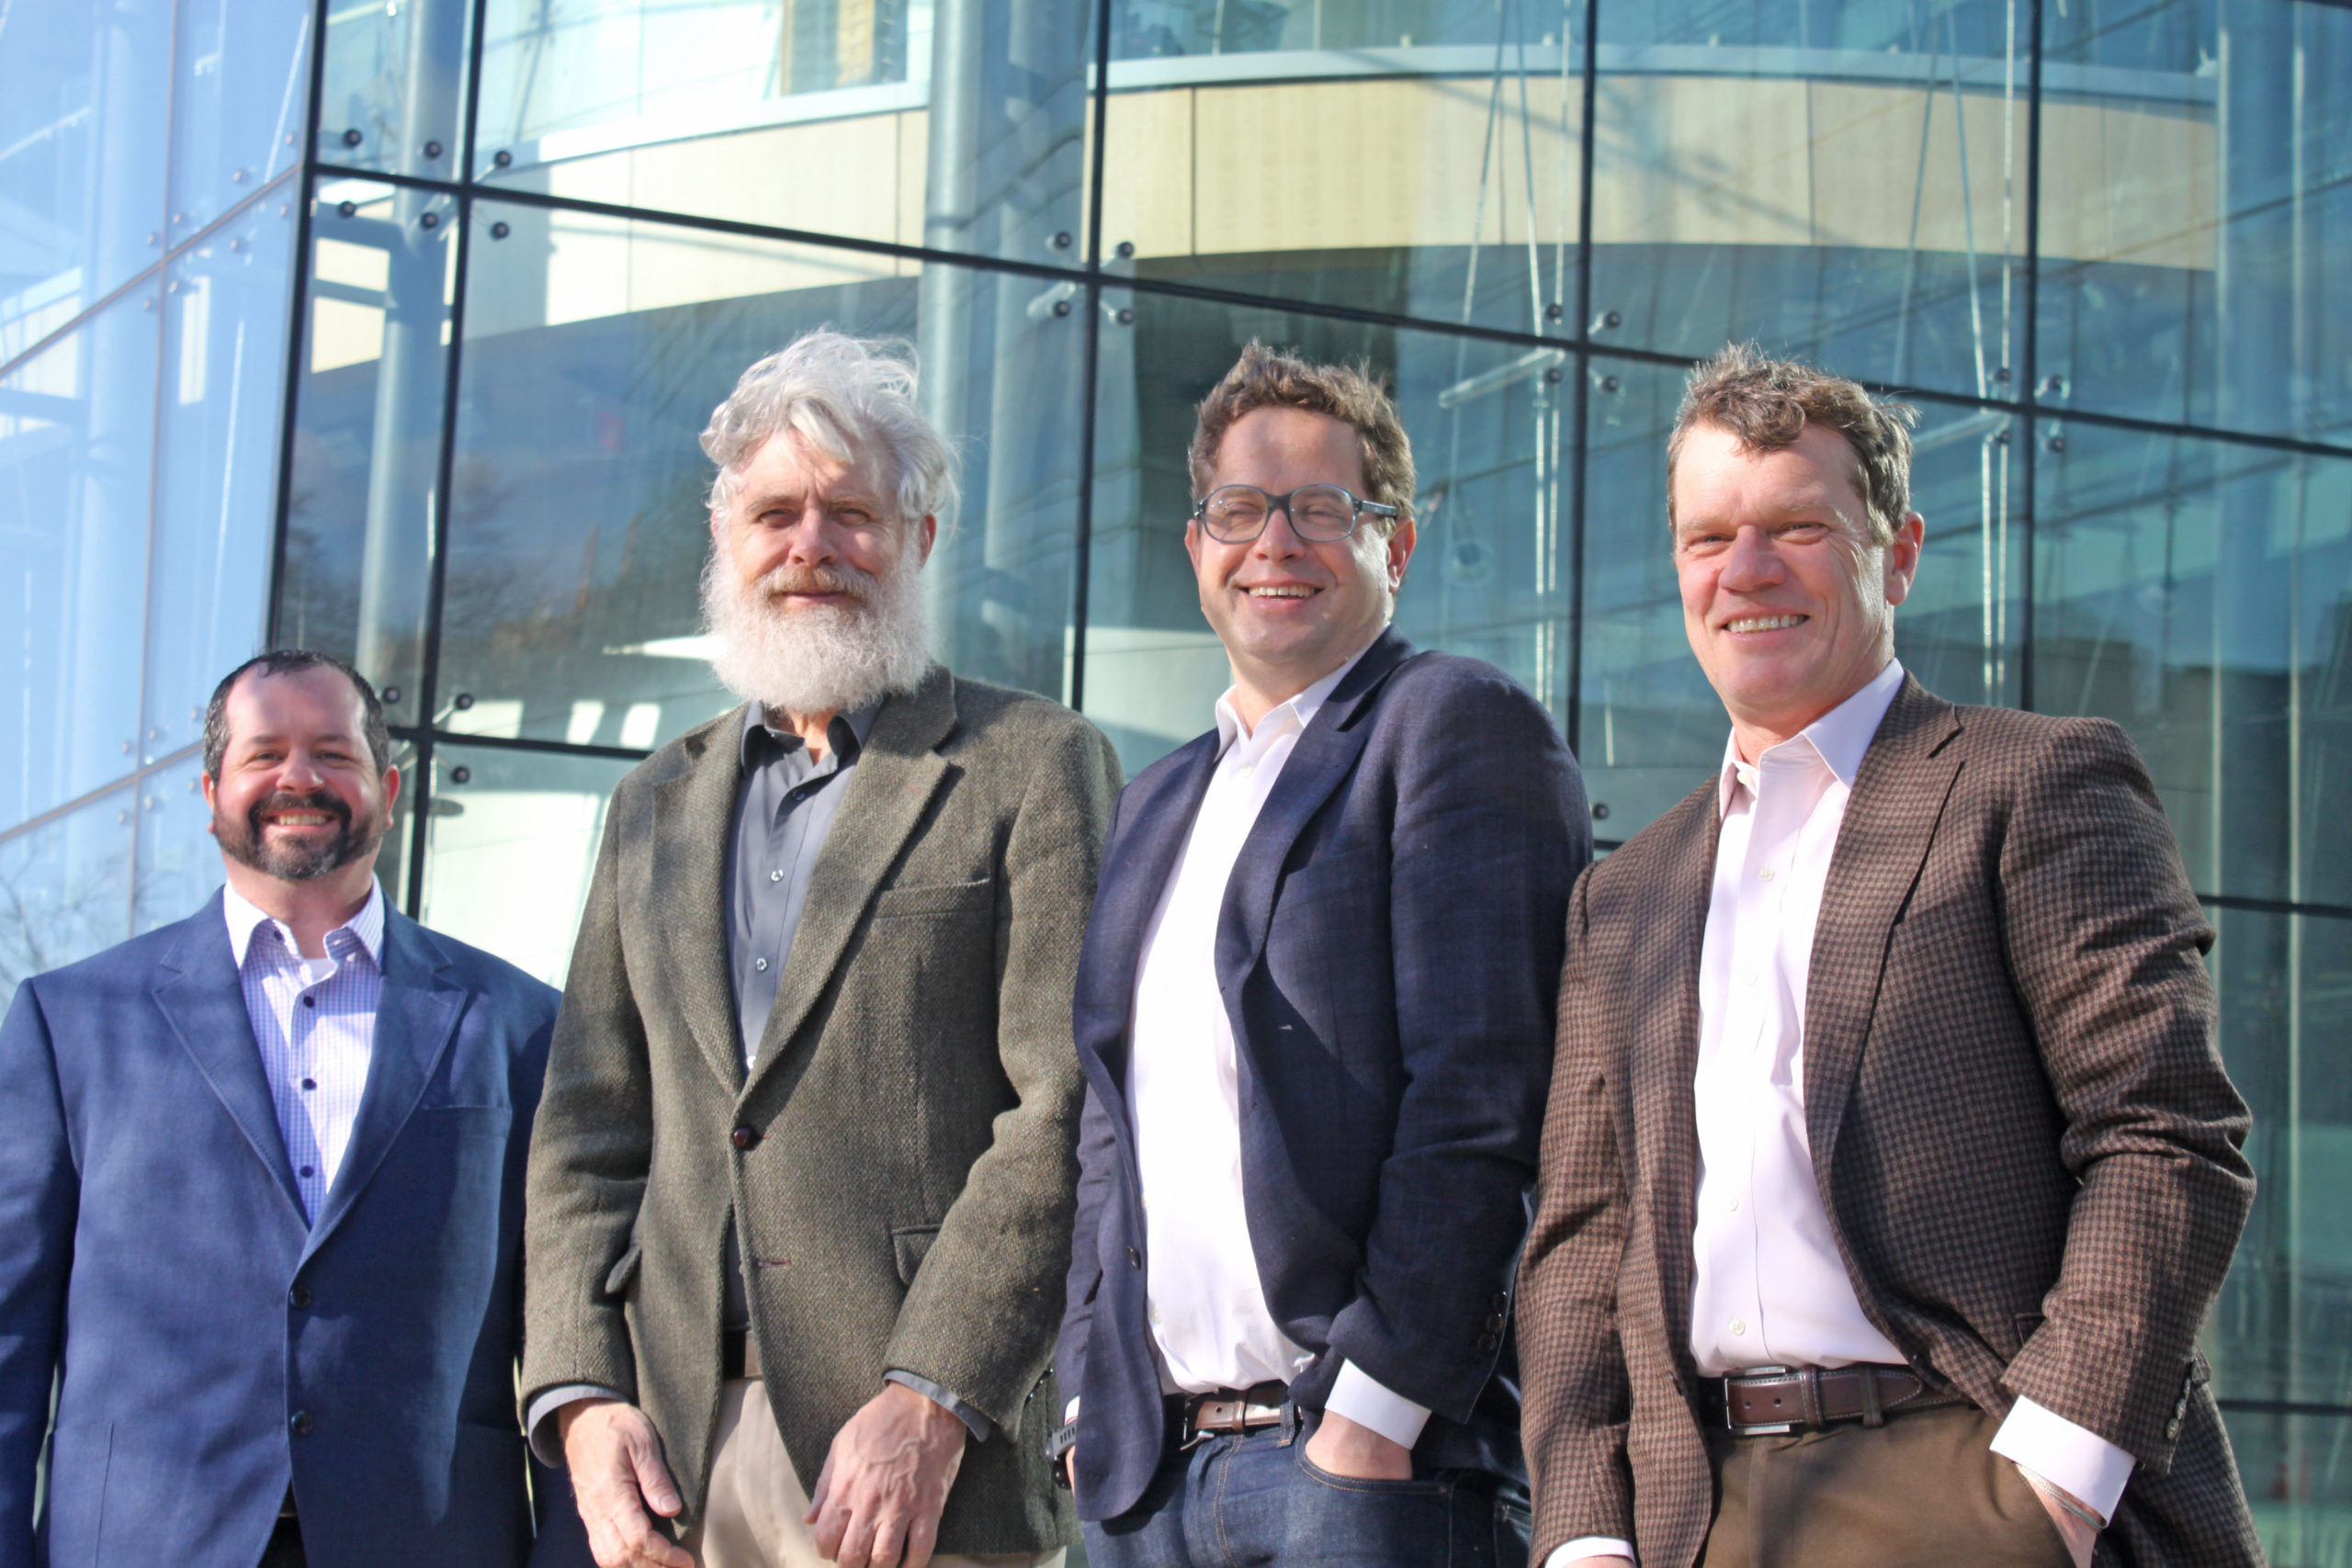 L-R: Jay Konieczka (COO, Co-founder, enEvolv), George Church (Co-founder, enEvolv), Josh Hoffman (CEO, Zymergen), Colin South (CEO, enEvolv)